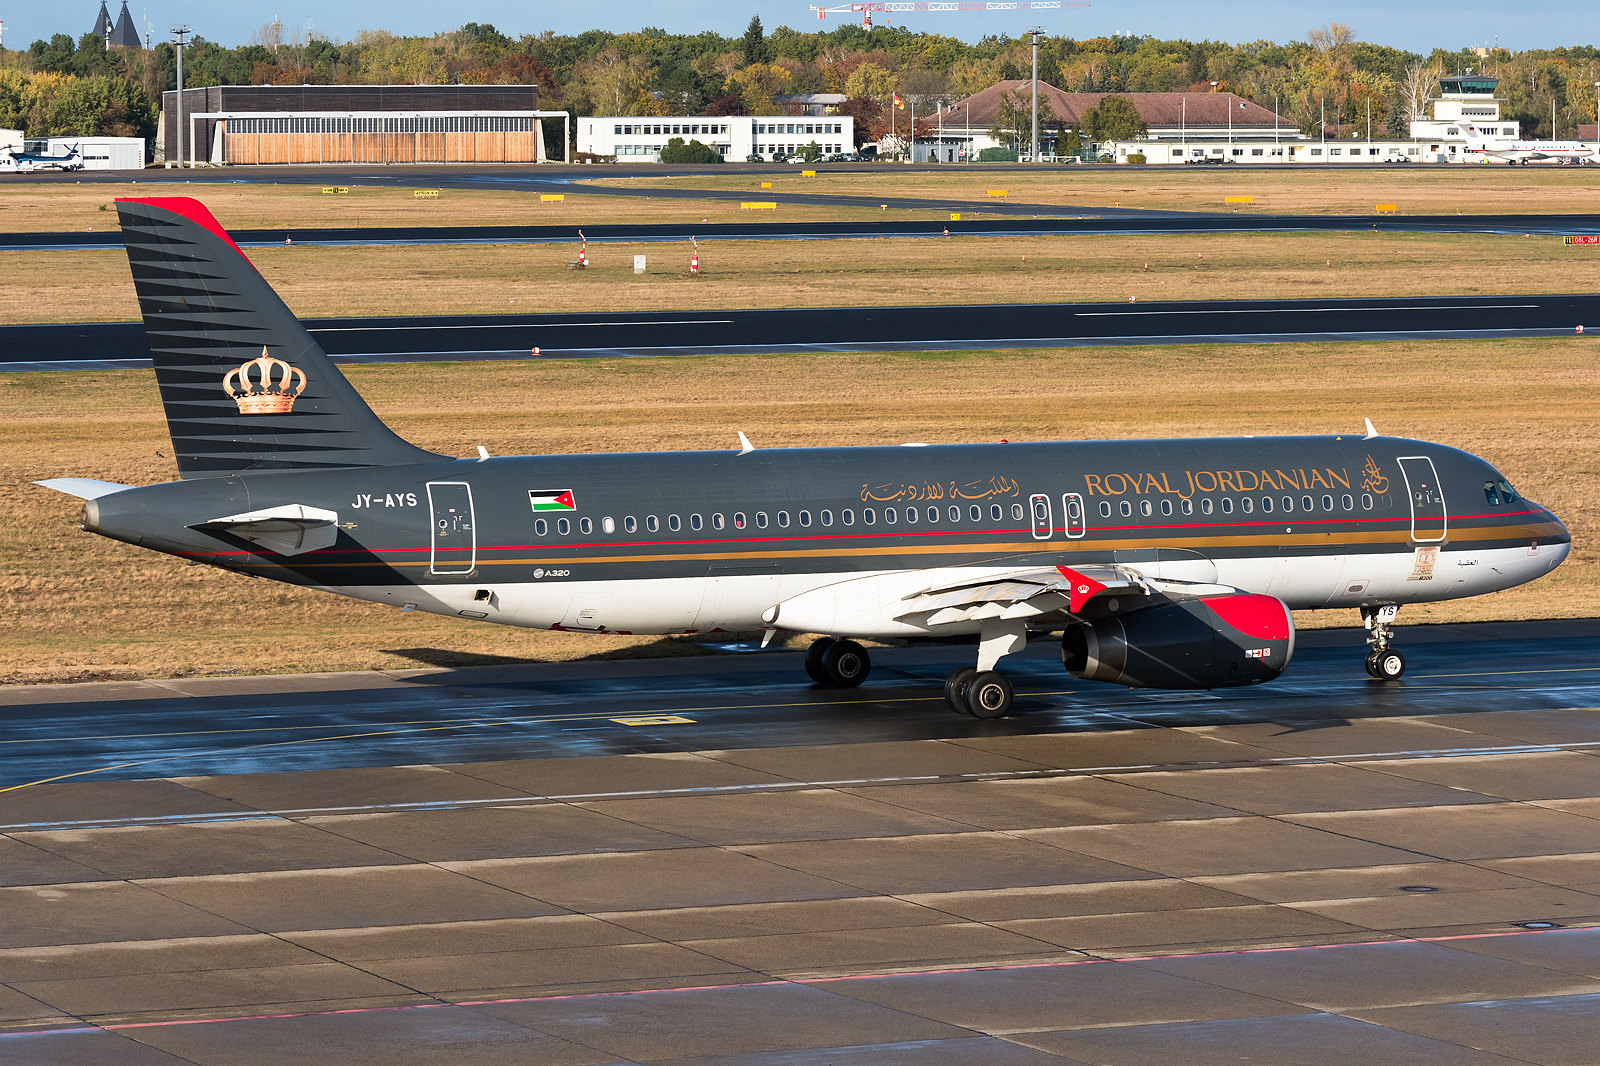 Royal Jordanian - Airbus A320 is taxiing for her departure.